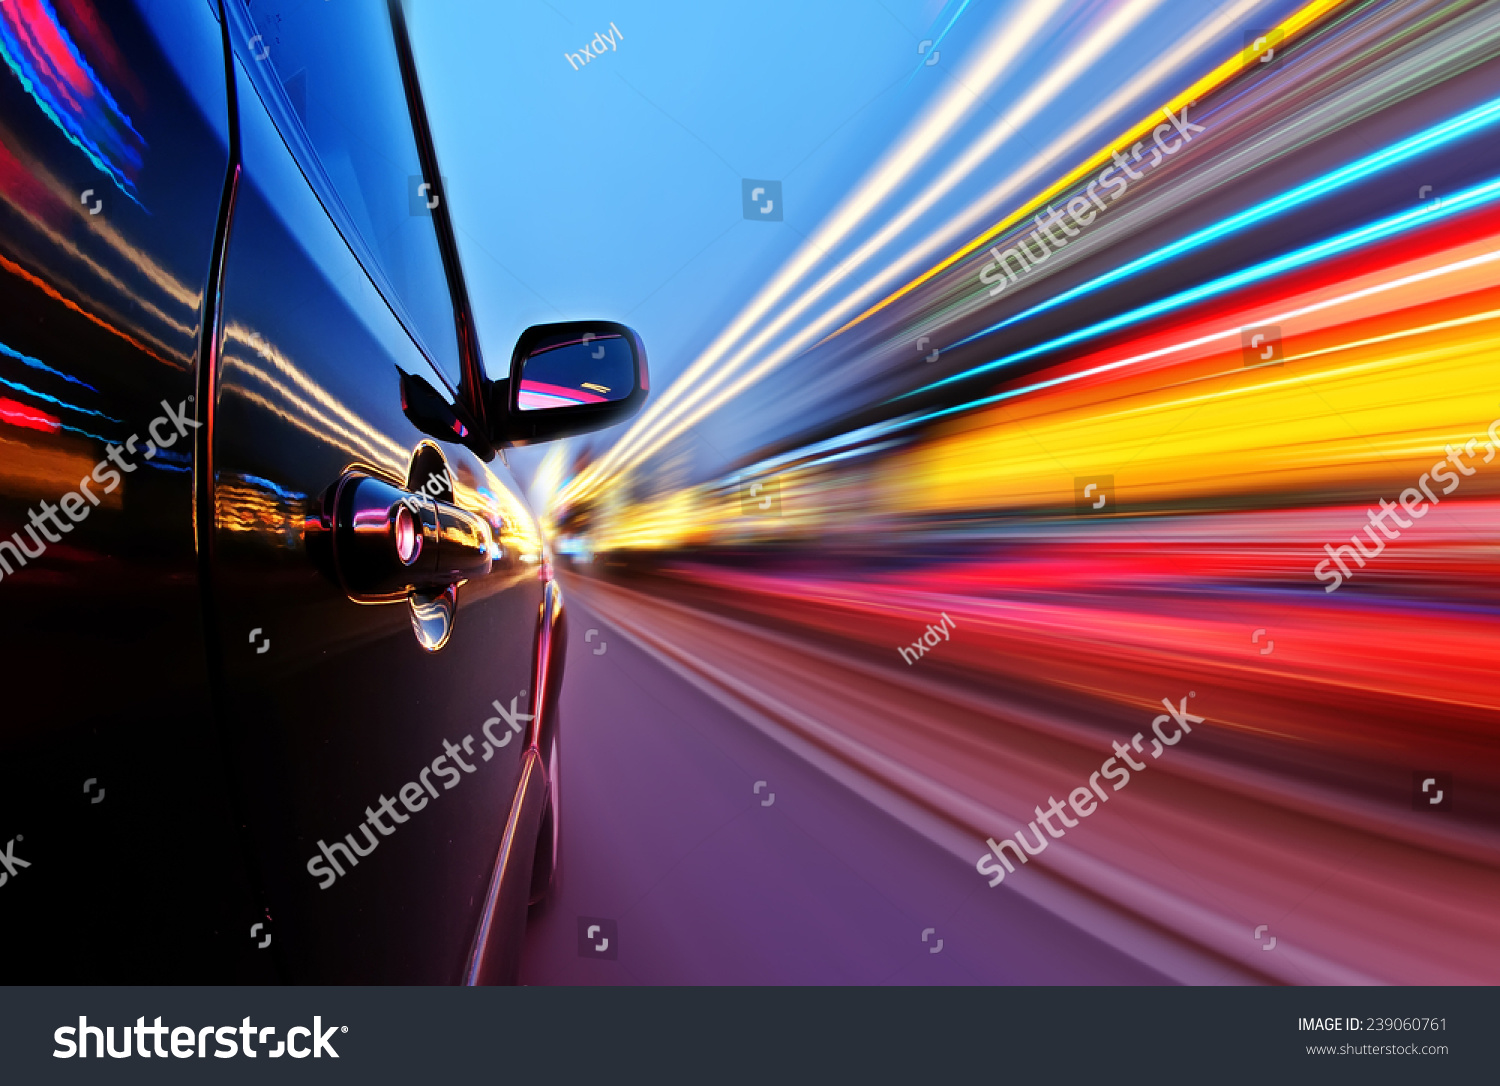 car on road motion blur background stock photo 239060761 shutterstock. Black Bedroom Furniture Sets. Home Design Ideas